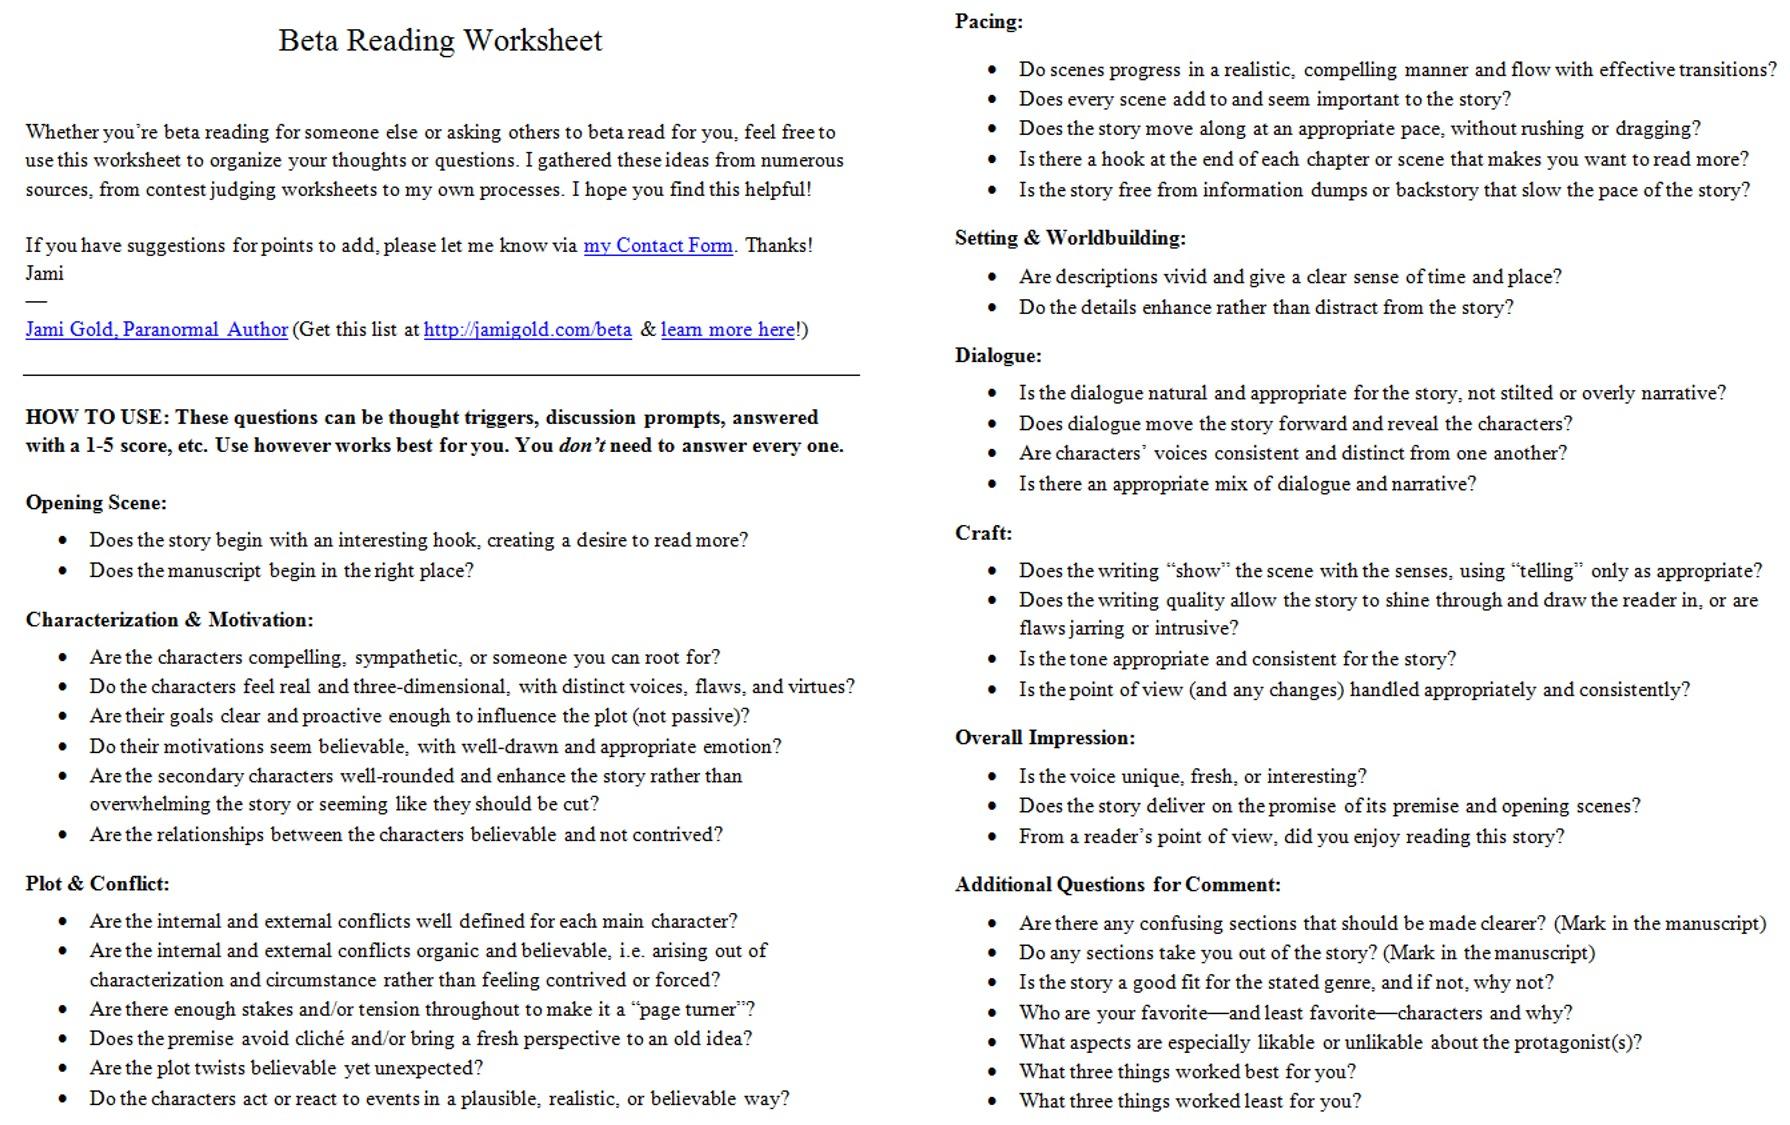 Aldiablosus  Winning Worksheets For Writers  Jami Gold Paranormal Author With Lovable Screen Shot Of The Twopage Beta Reading Worksheet With Easy On The Eye The Four Agreements Worksheet Also Teaching Responsibility Worksheets In Addition Short Stories Worksheets And Write The Alphabet Worksheet As Well As Plural Noun Worksheets For Nd Grade Additionally Free Printable Latitude And Longitude Worksheets From Jamigoldcom With Aldiablosus  Lovable Worksheets For Writers  Jami Gold Paranormal Author With Easy On The Eye Screen Shot Of The Twopage Beta Reading Worksheet And Winning The Four Agreements Worksheet Also Teaching Responsibility Worksheets In Addition Short Stories Worksheets From Jamigoldcom